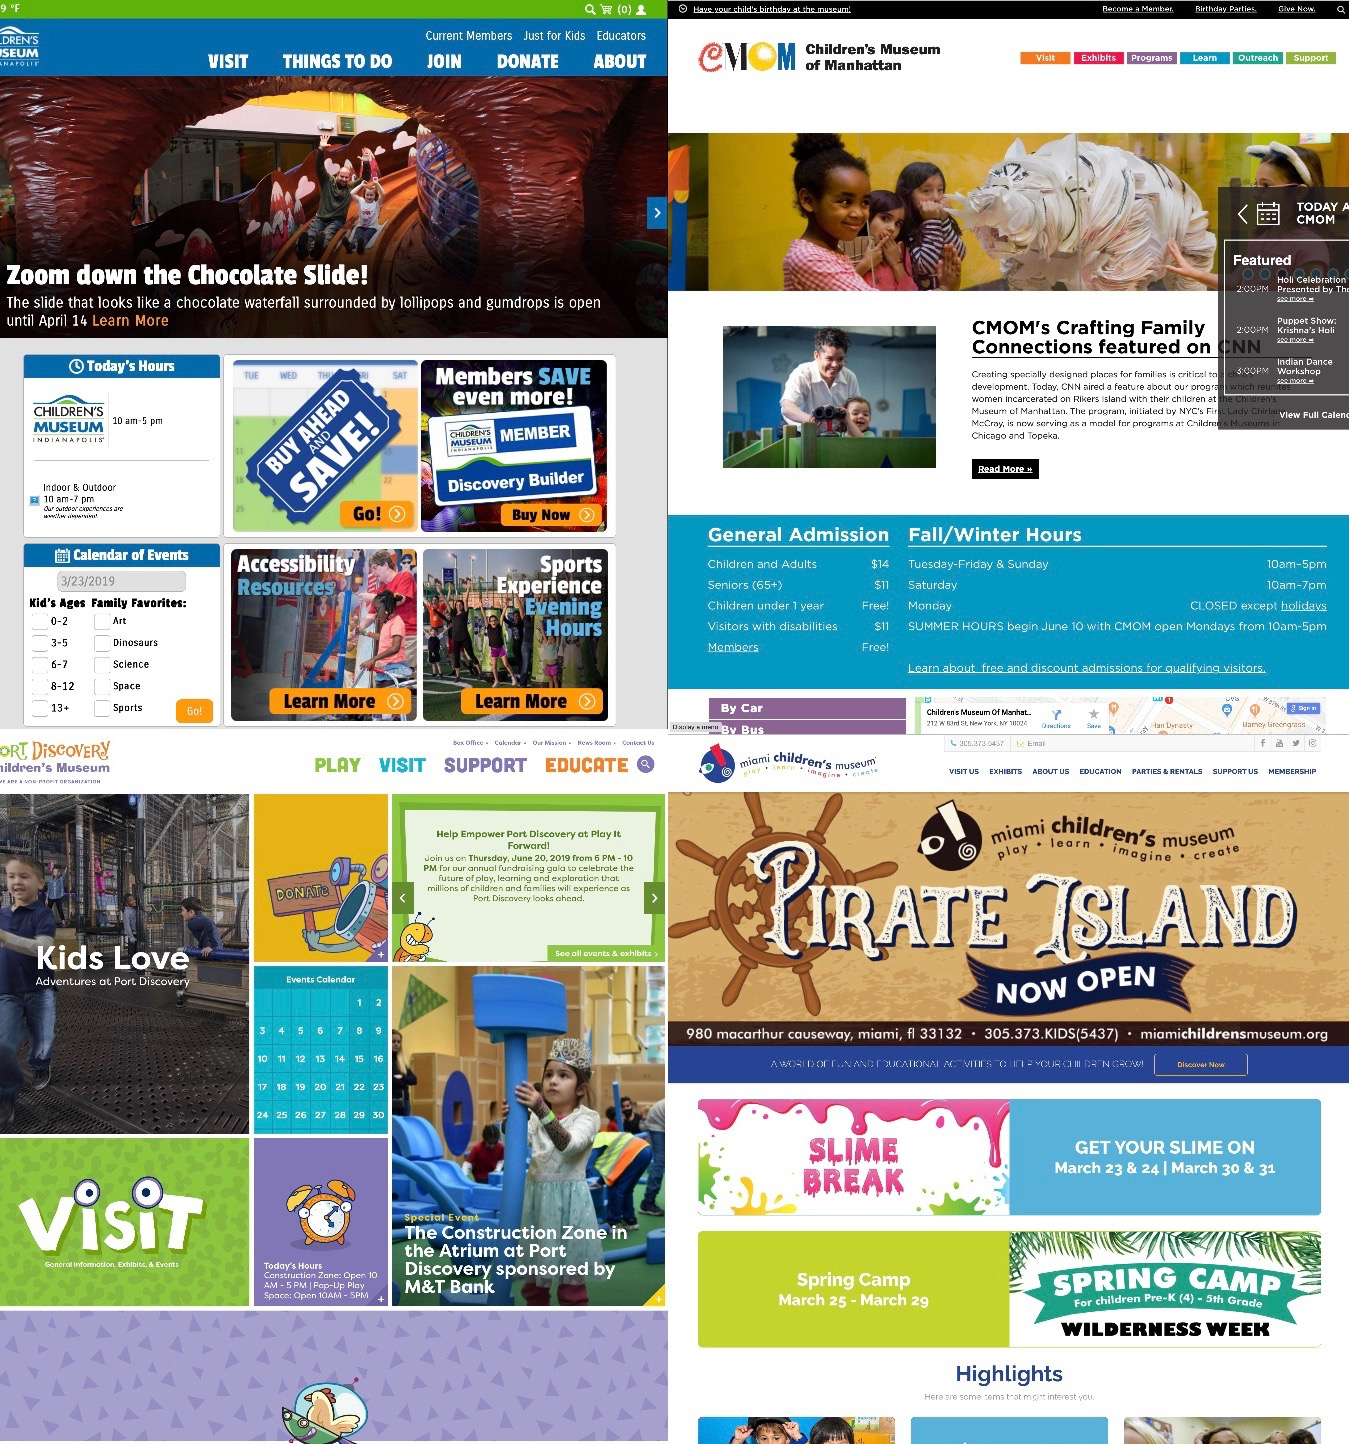 Home pages of different children's museums